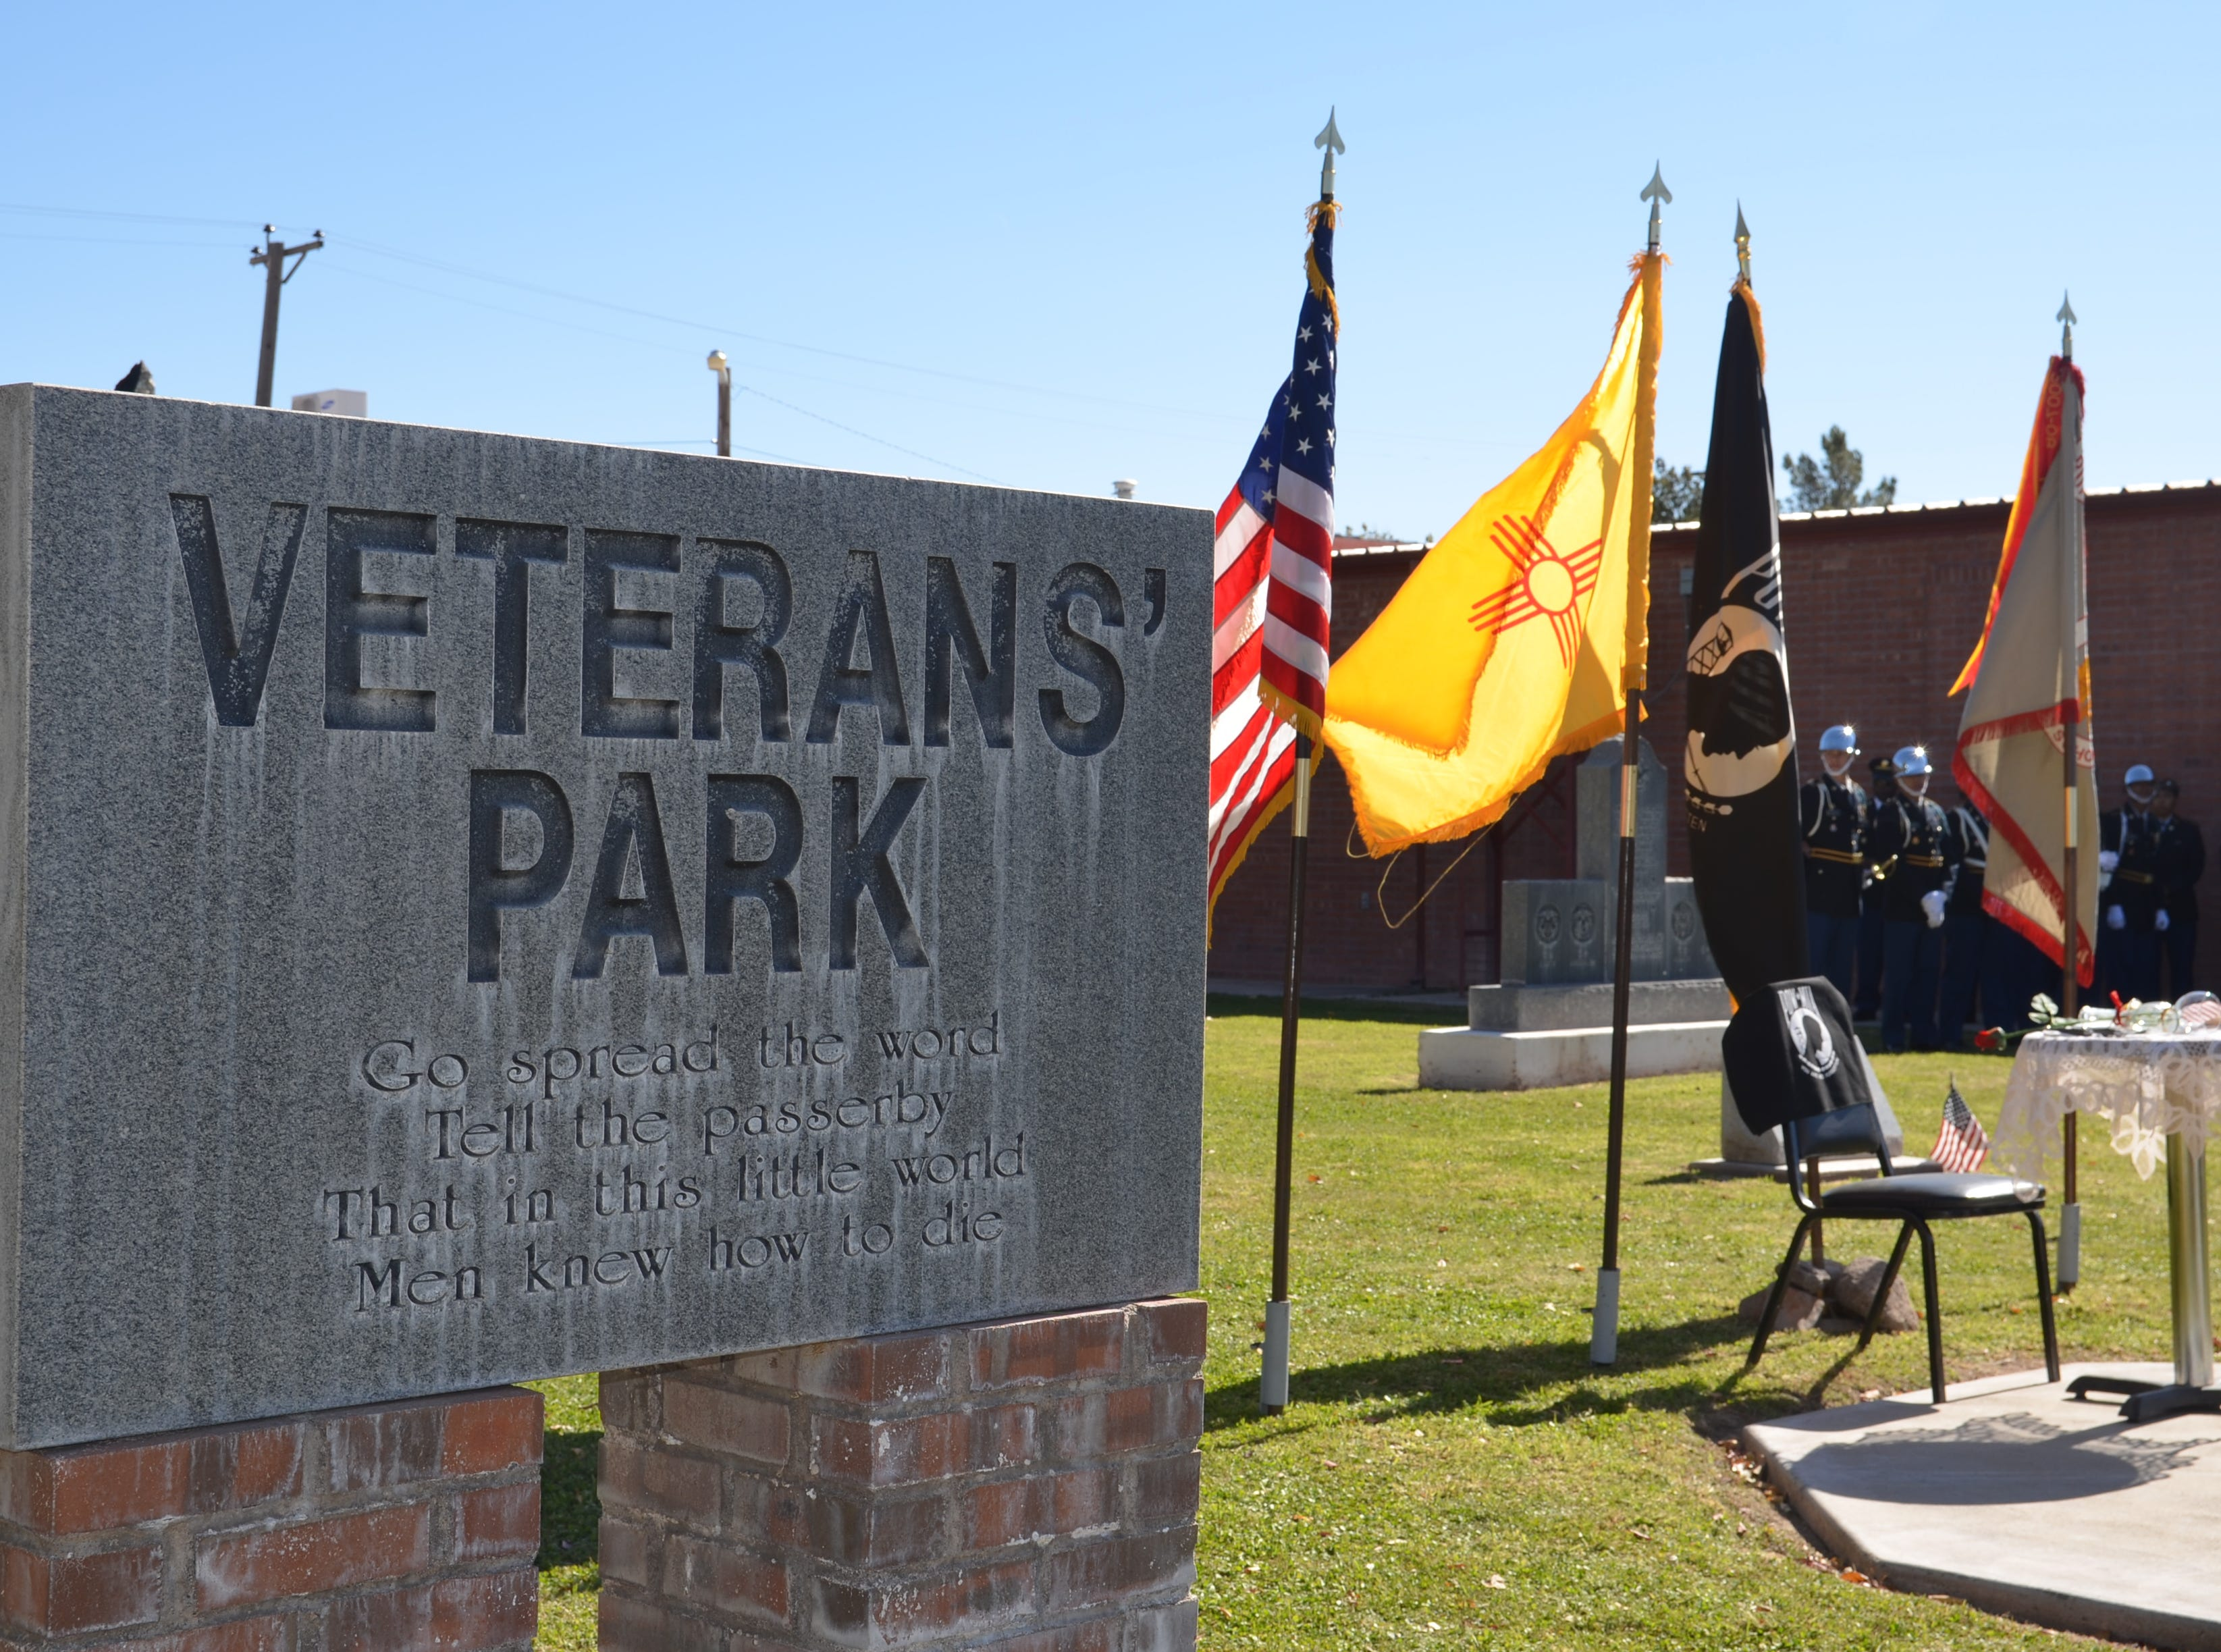 Local veterans across all military branches dedicated a ceremony to honor and recognize those who have given their lives to serve the country and its people at Veterans Park on Sunday.